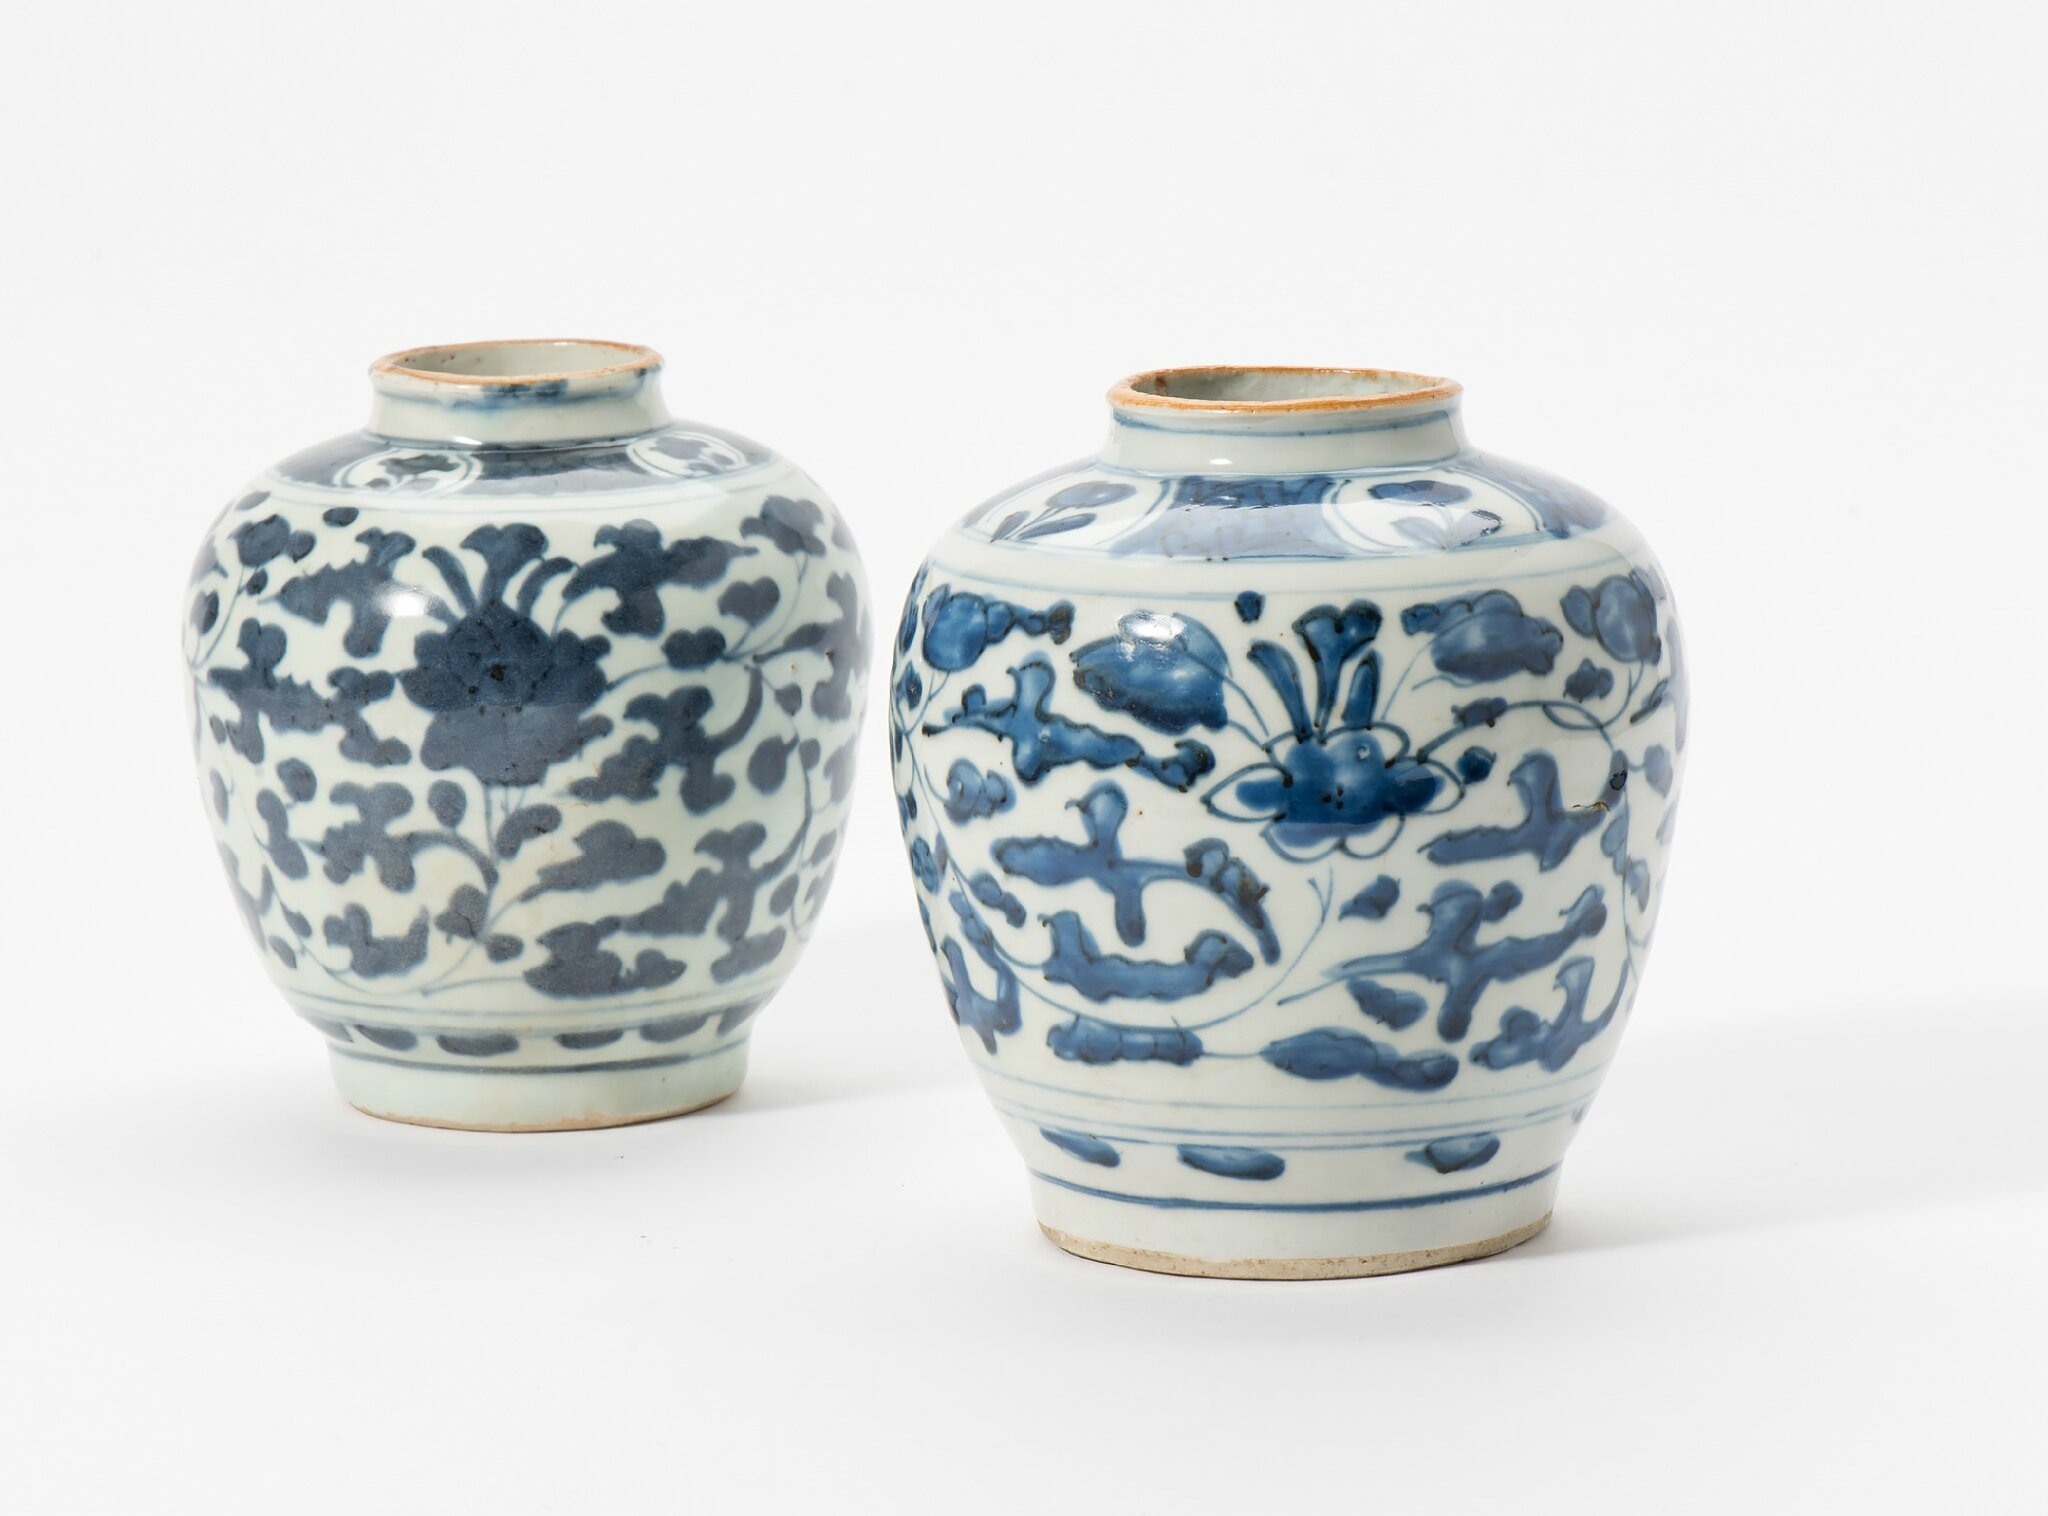 Two blue and white vases, Wanli period (1573-1619)